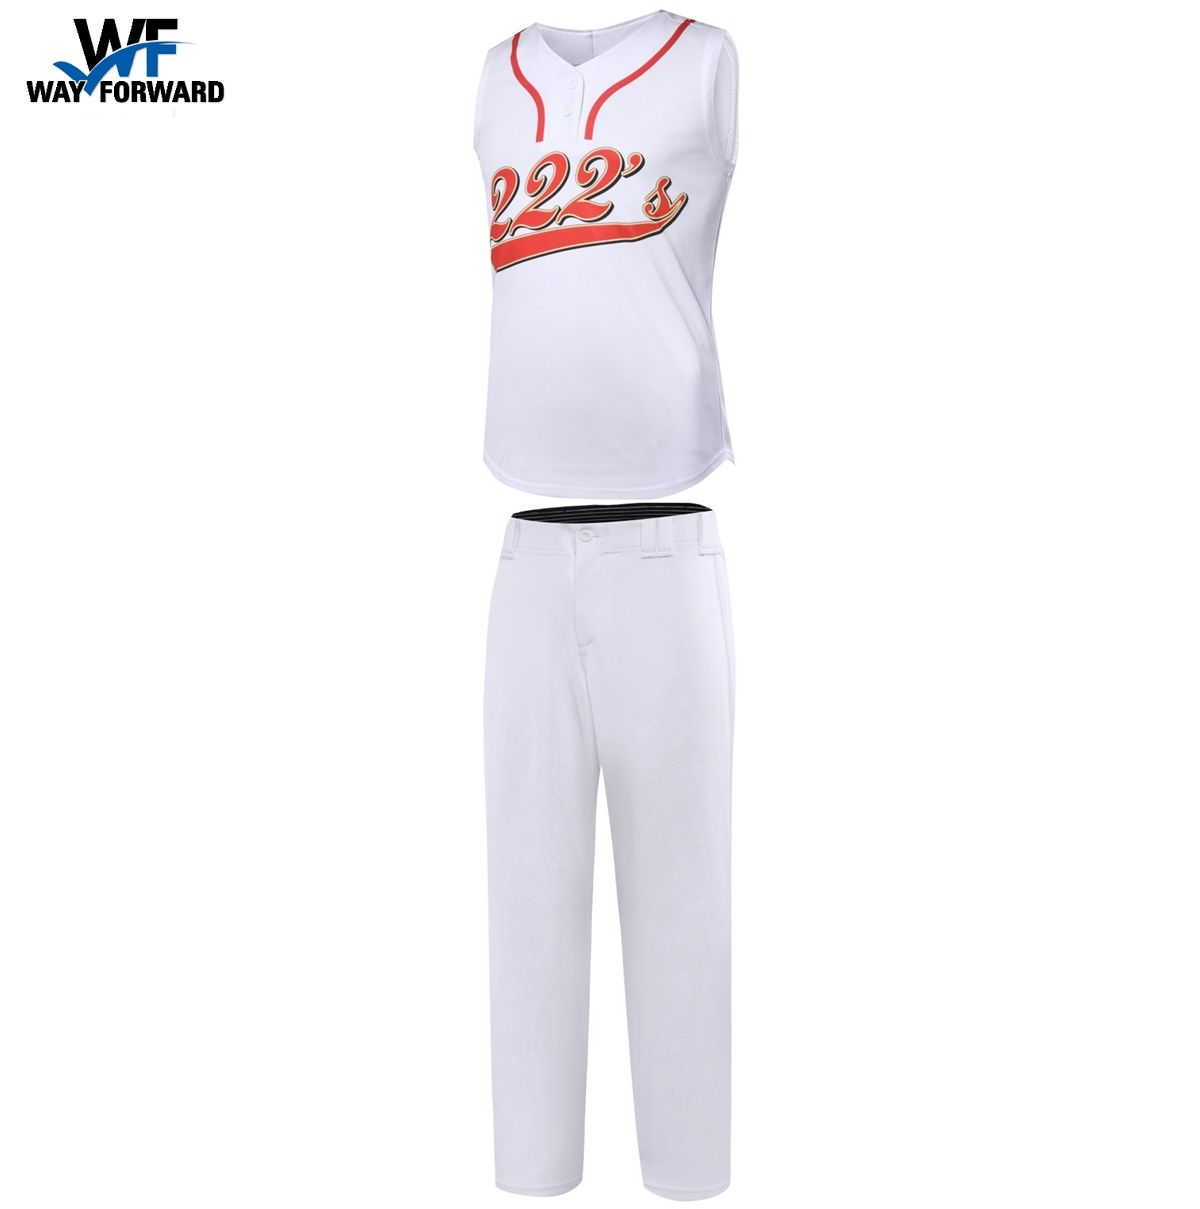 Factory Direct Price Click To Get Price List Short Sleeve And Sleeveless Baseball Uniform Options 2 Butto Training Clothes Team Wear Youth Baseball Uniforms